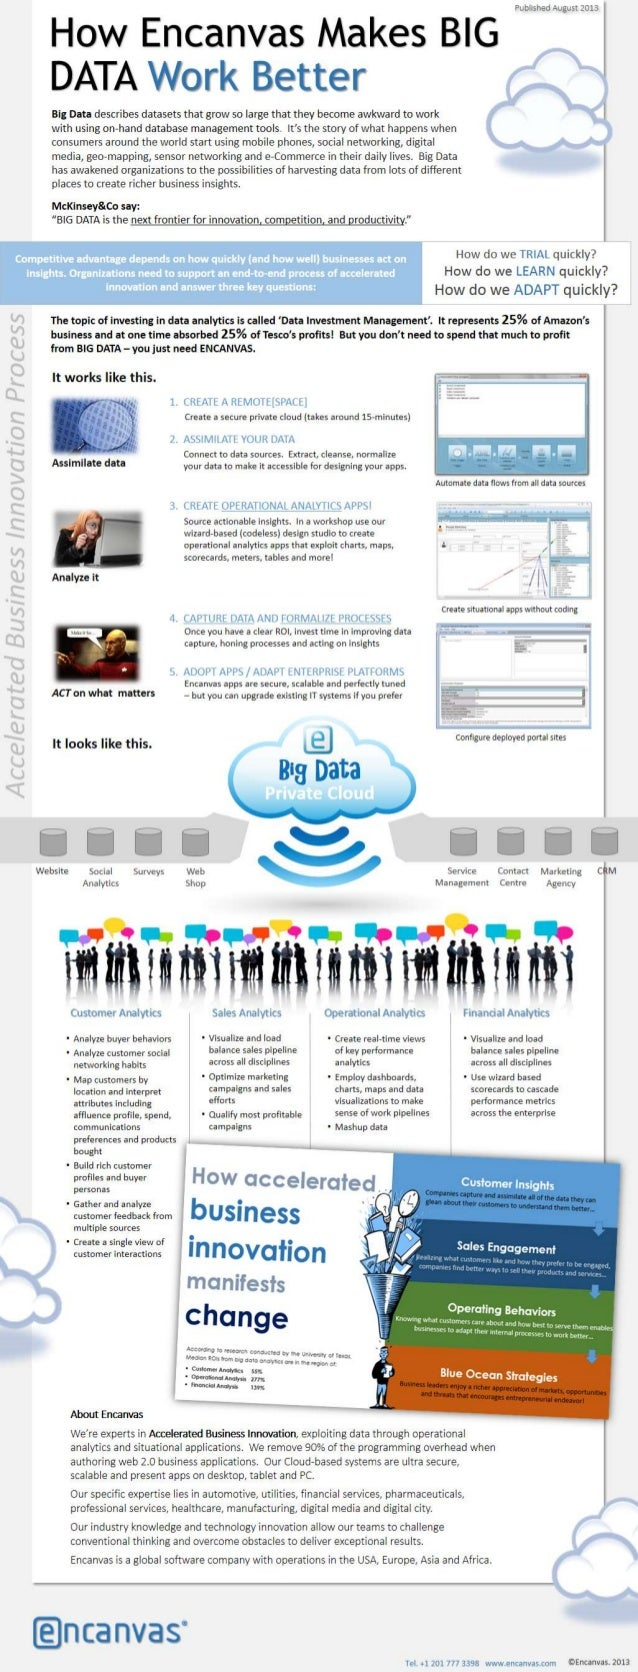 Big Data with Encanvas (Infographic)